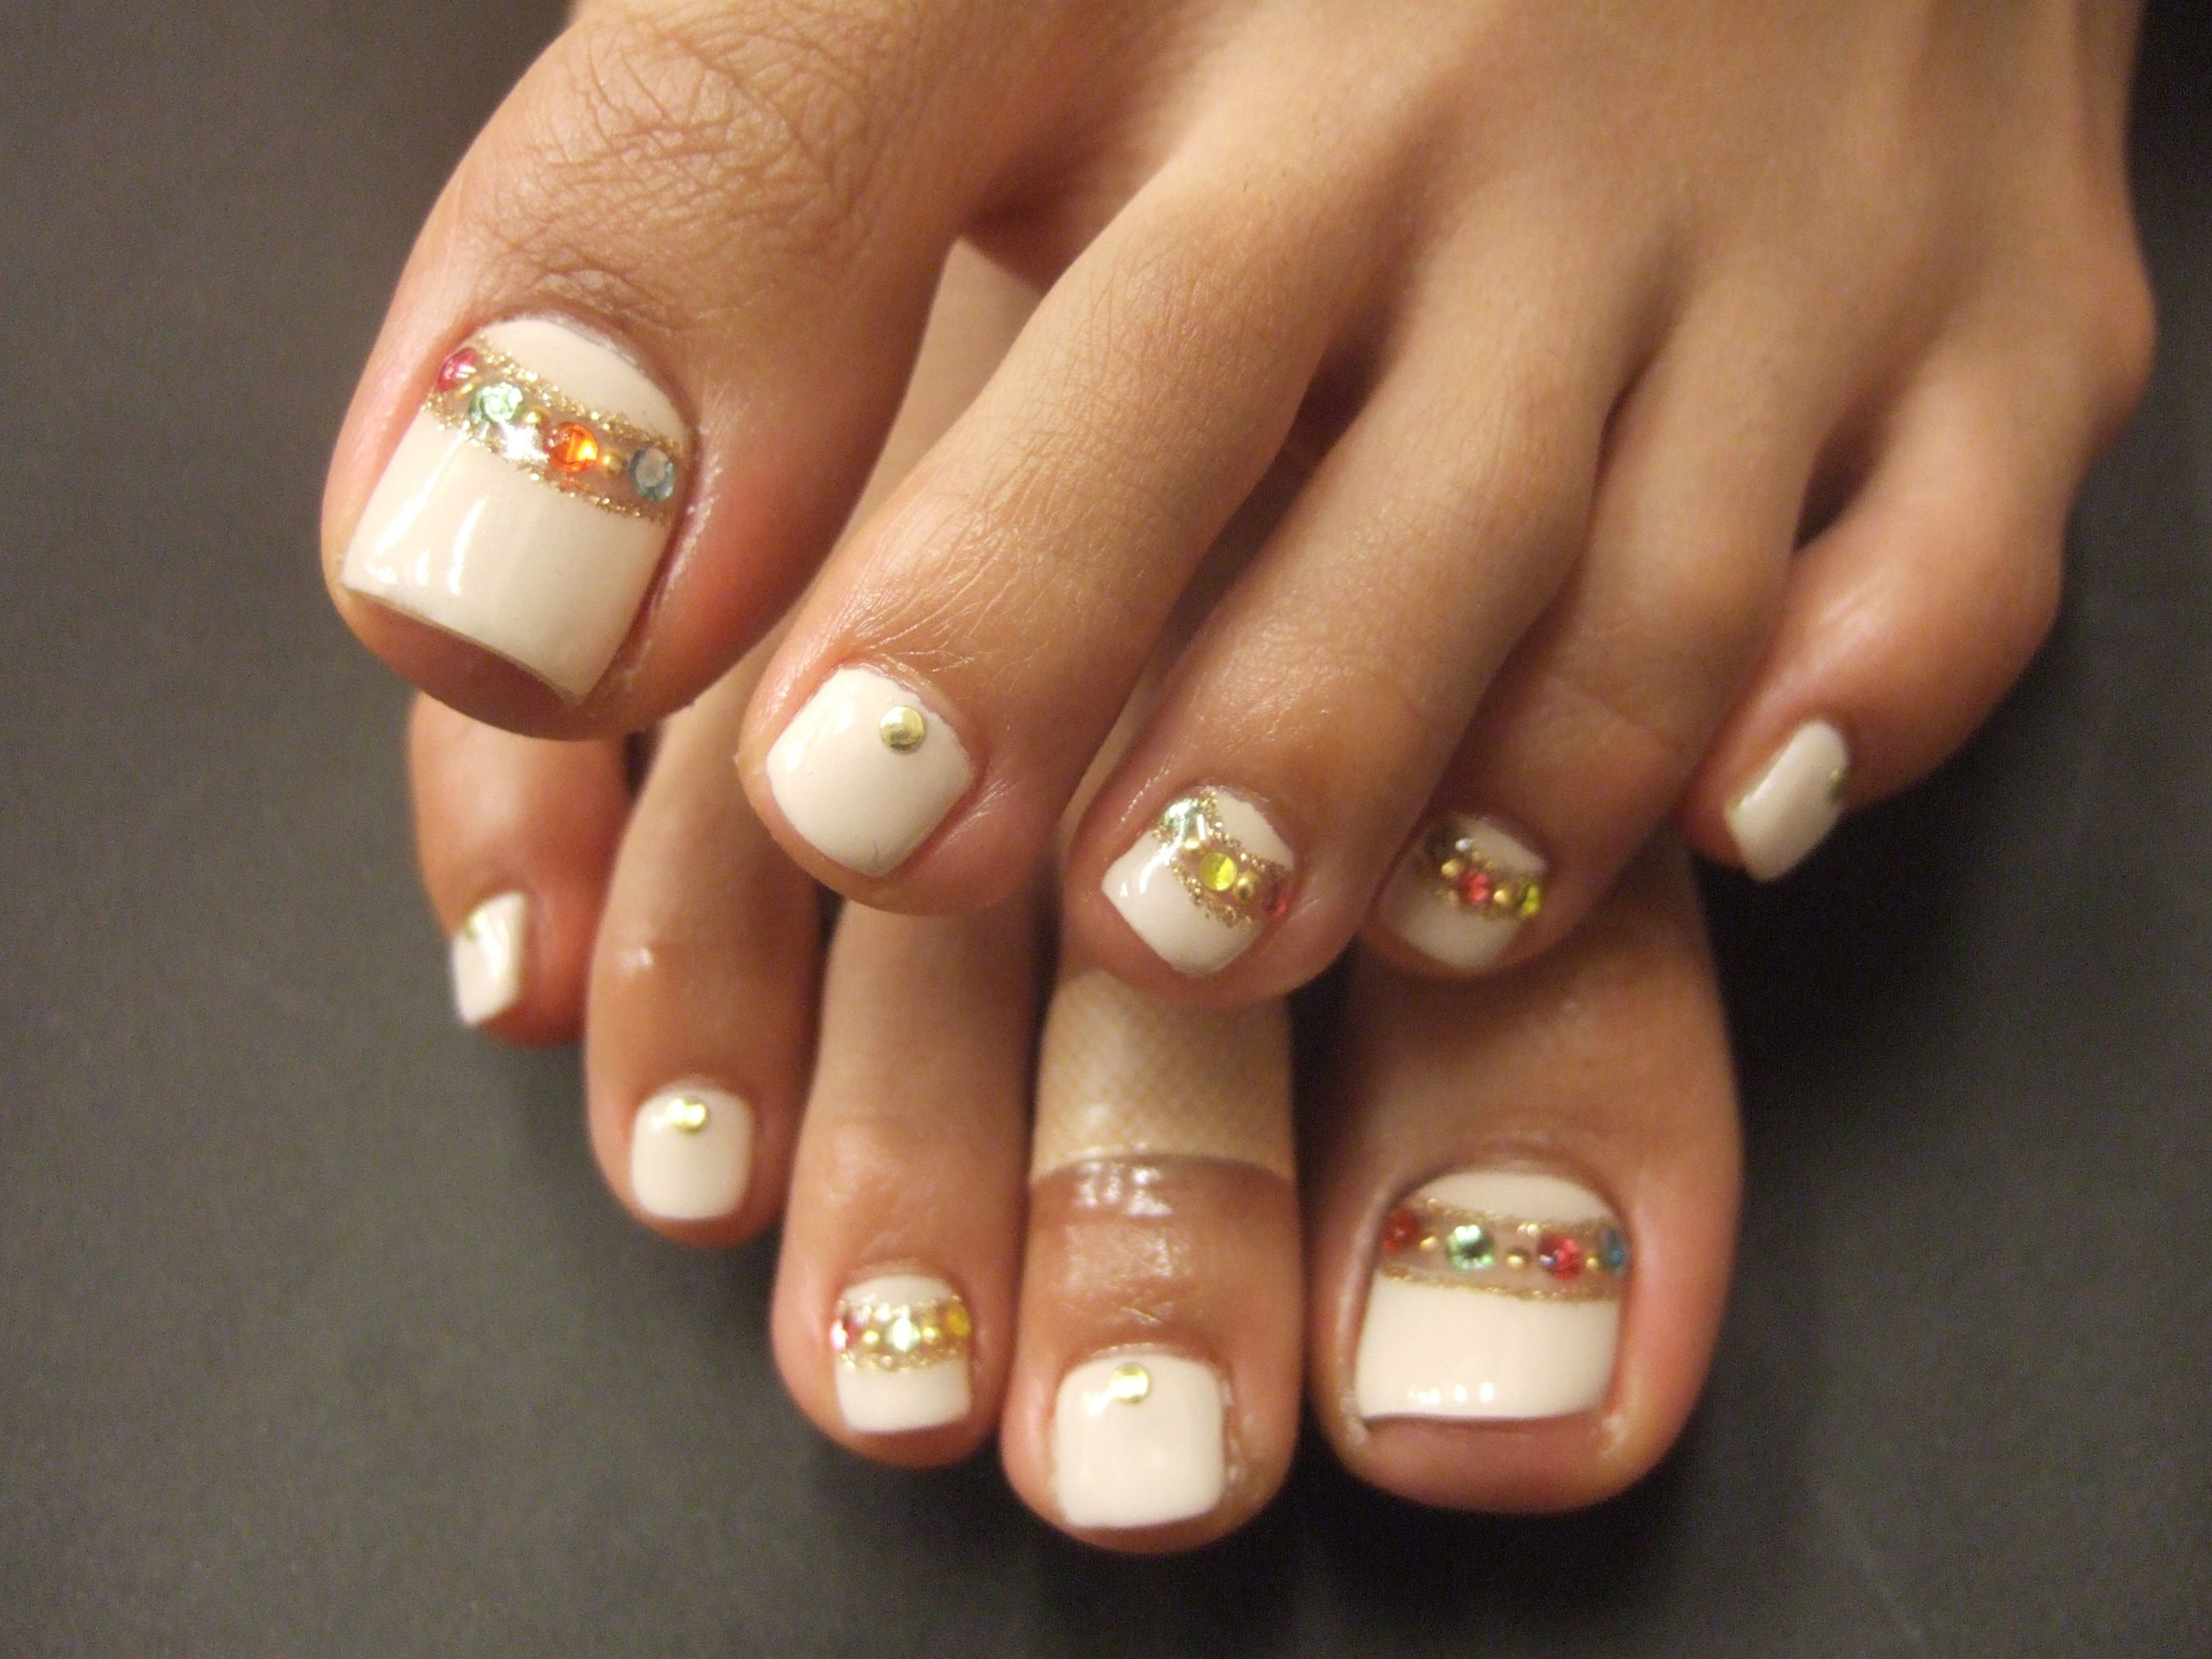 White Toes With Gold Band And Rhinestones Feet Nail Design Luxury Nails Toe Nails